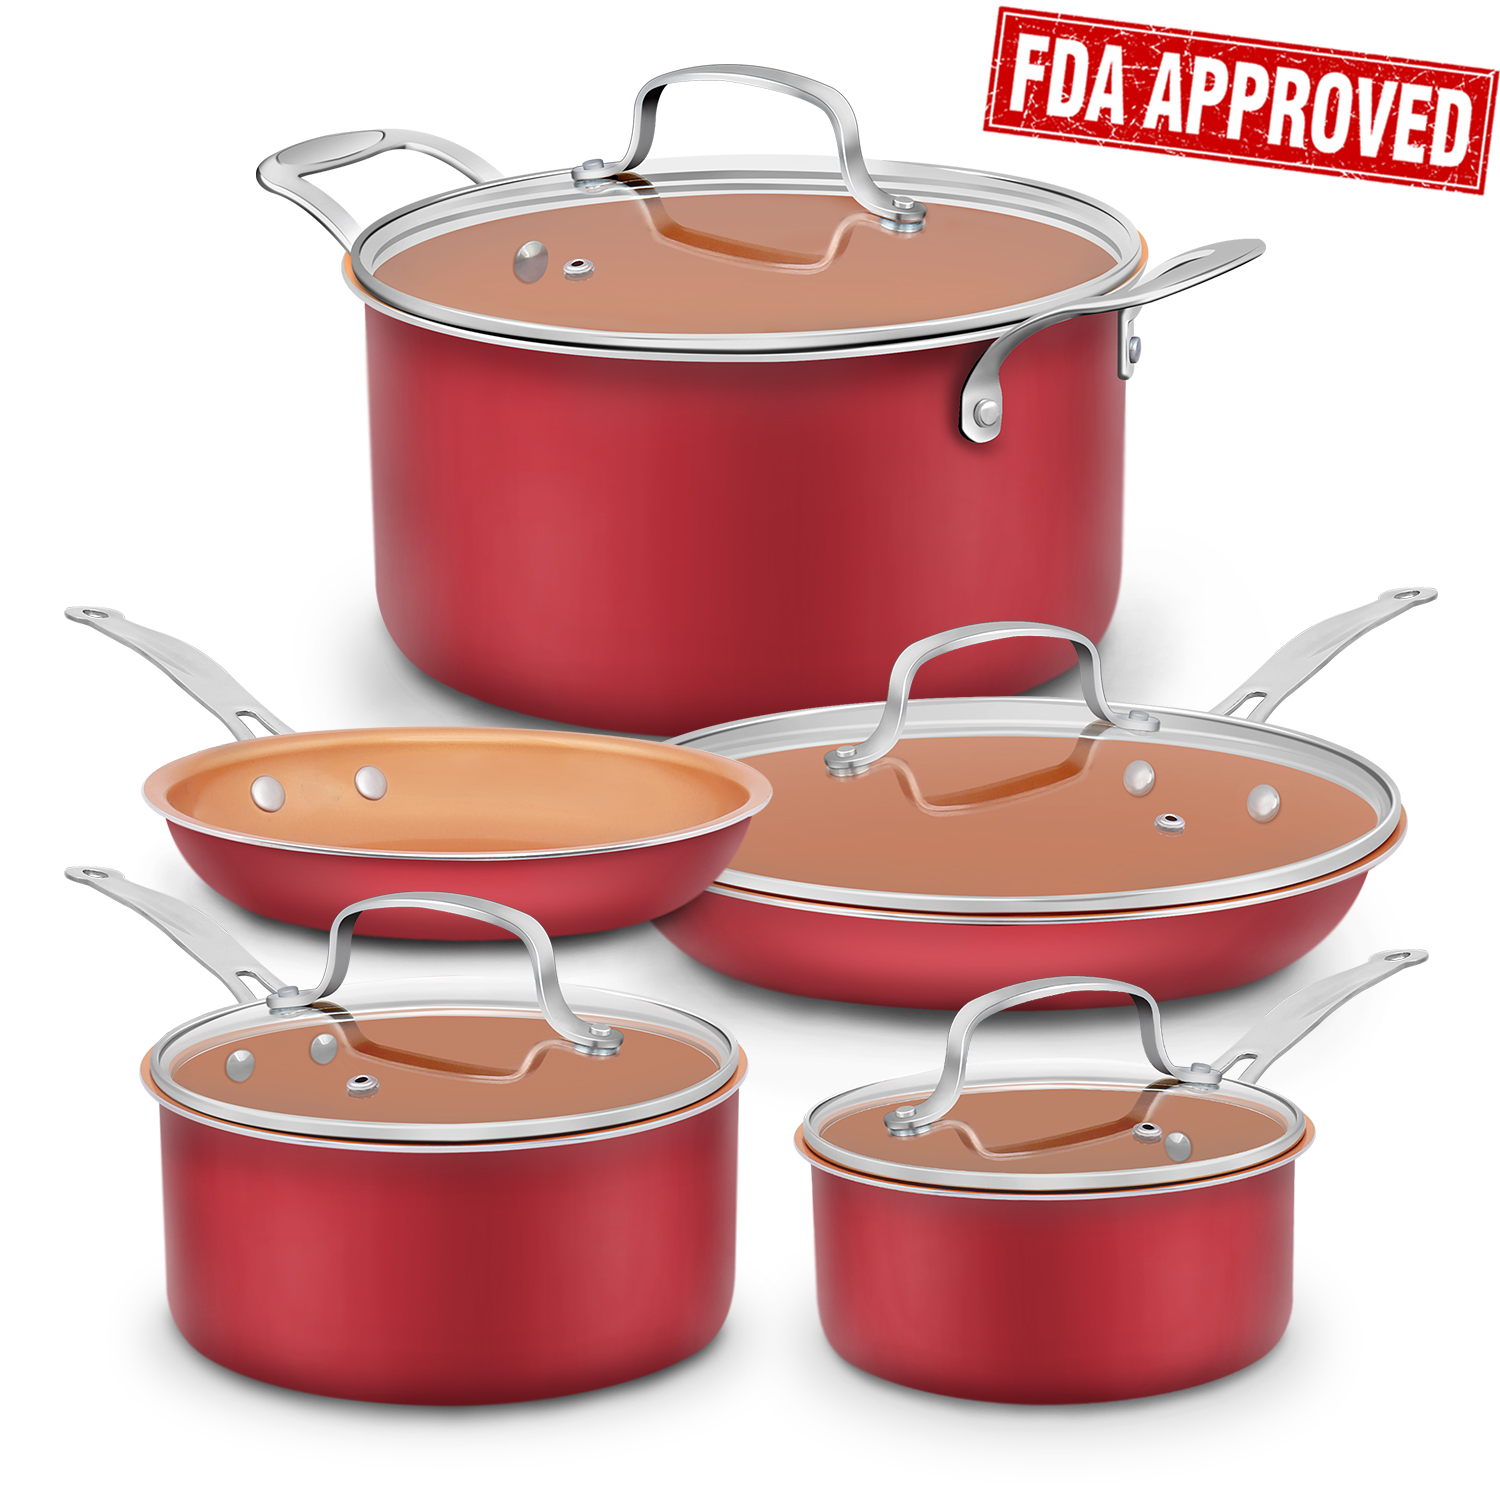 9-Piece Aluminum-Infused Copper Ceramic Non-Stick Cookware Set